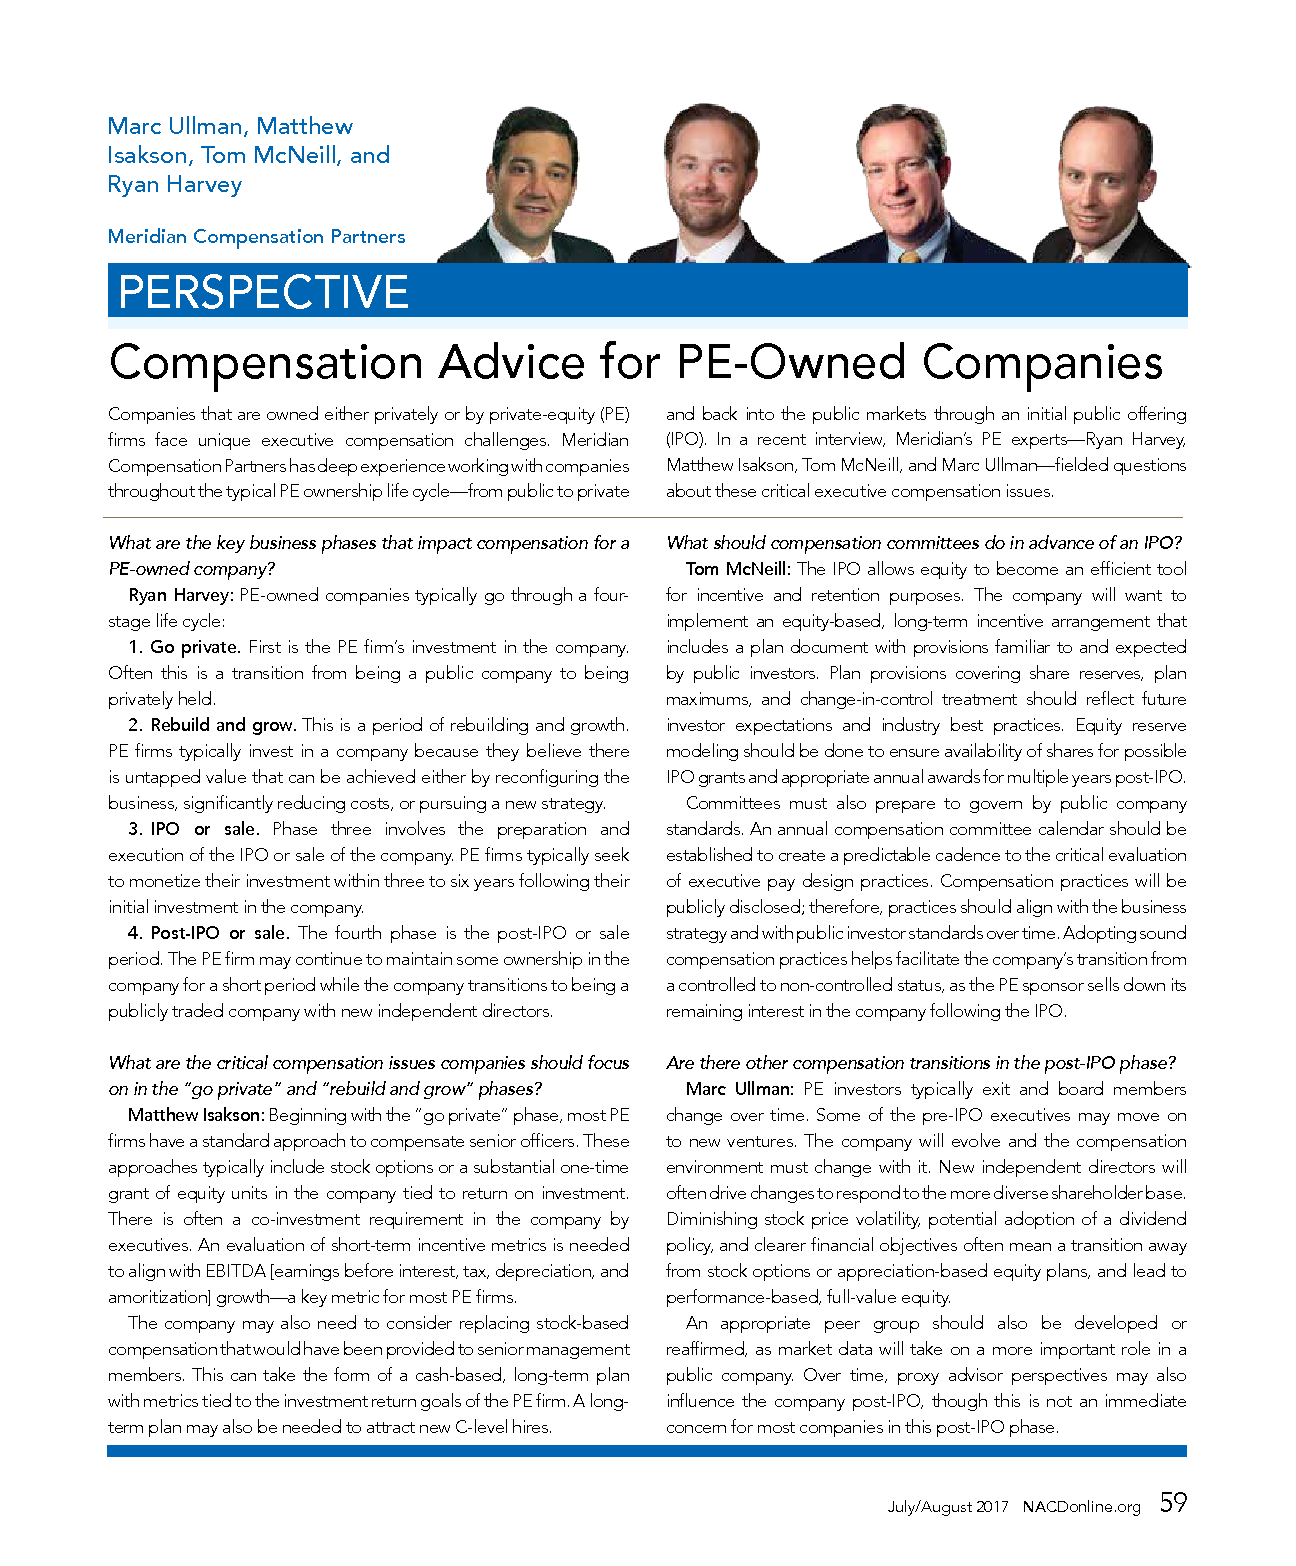 Compensation Advice for PE-Owned Companies (PDF)